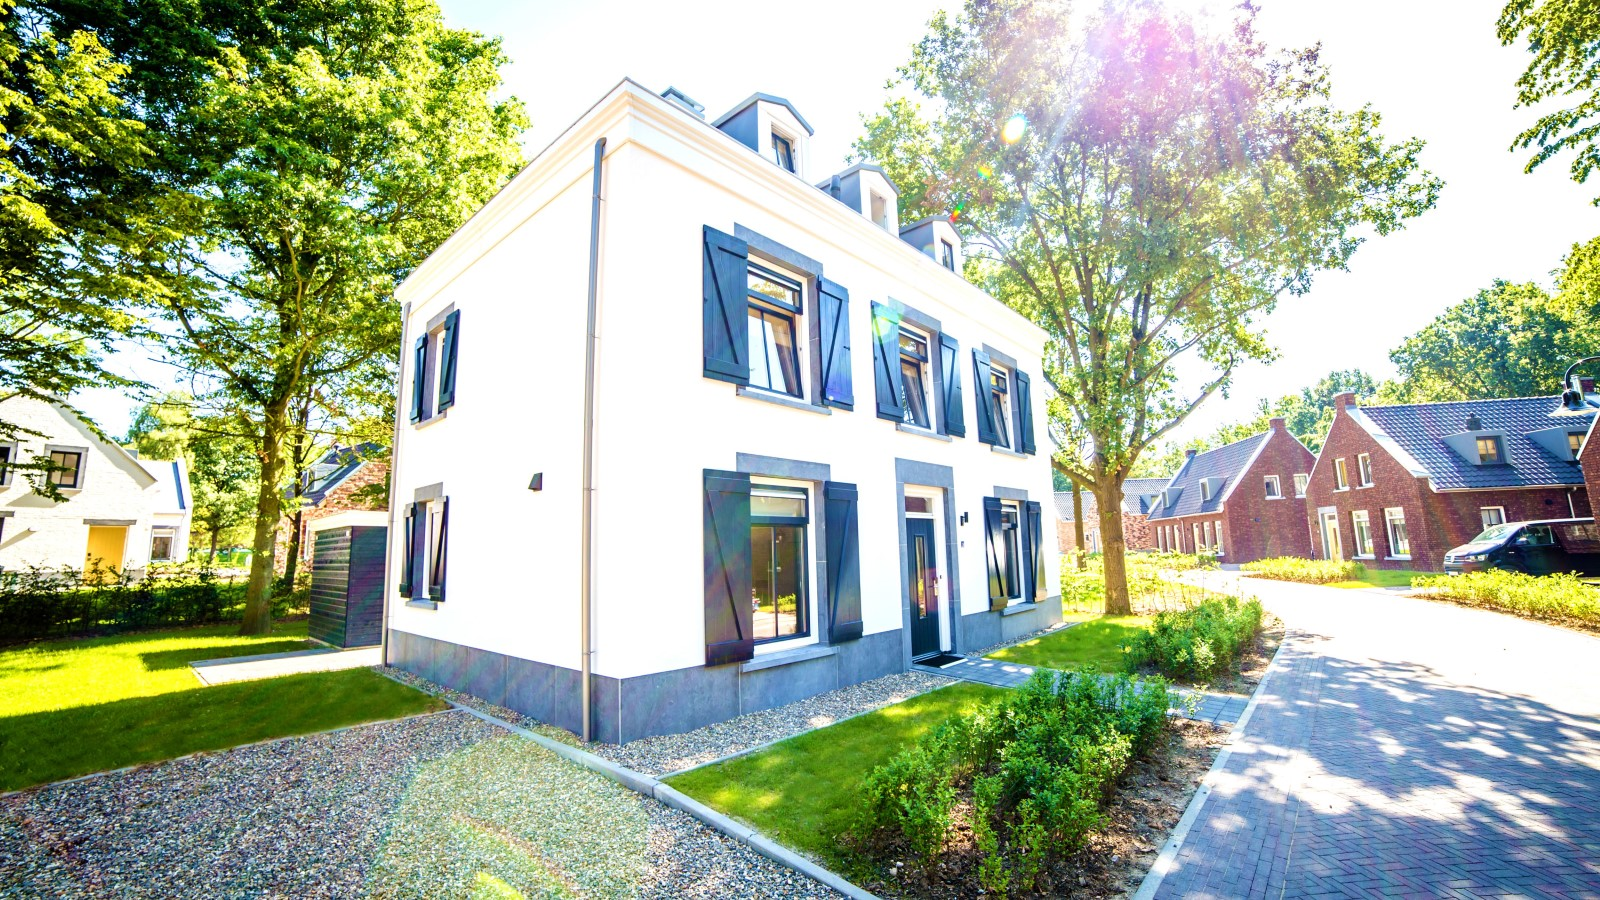 Notarishuis luxury - 6 bedrooms